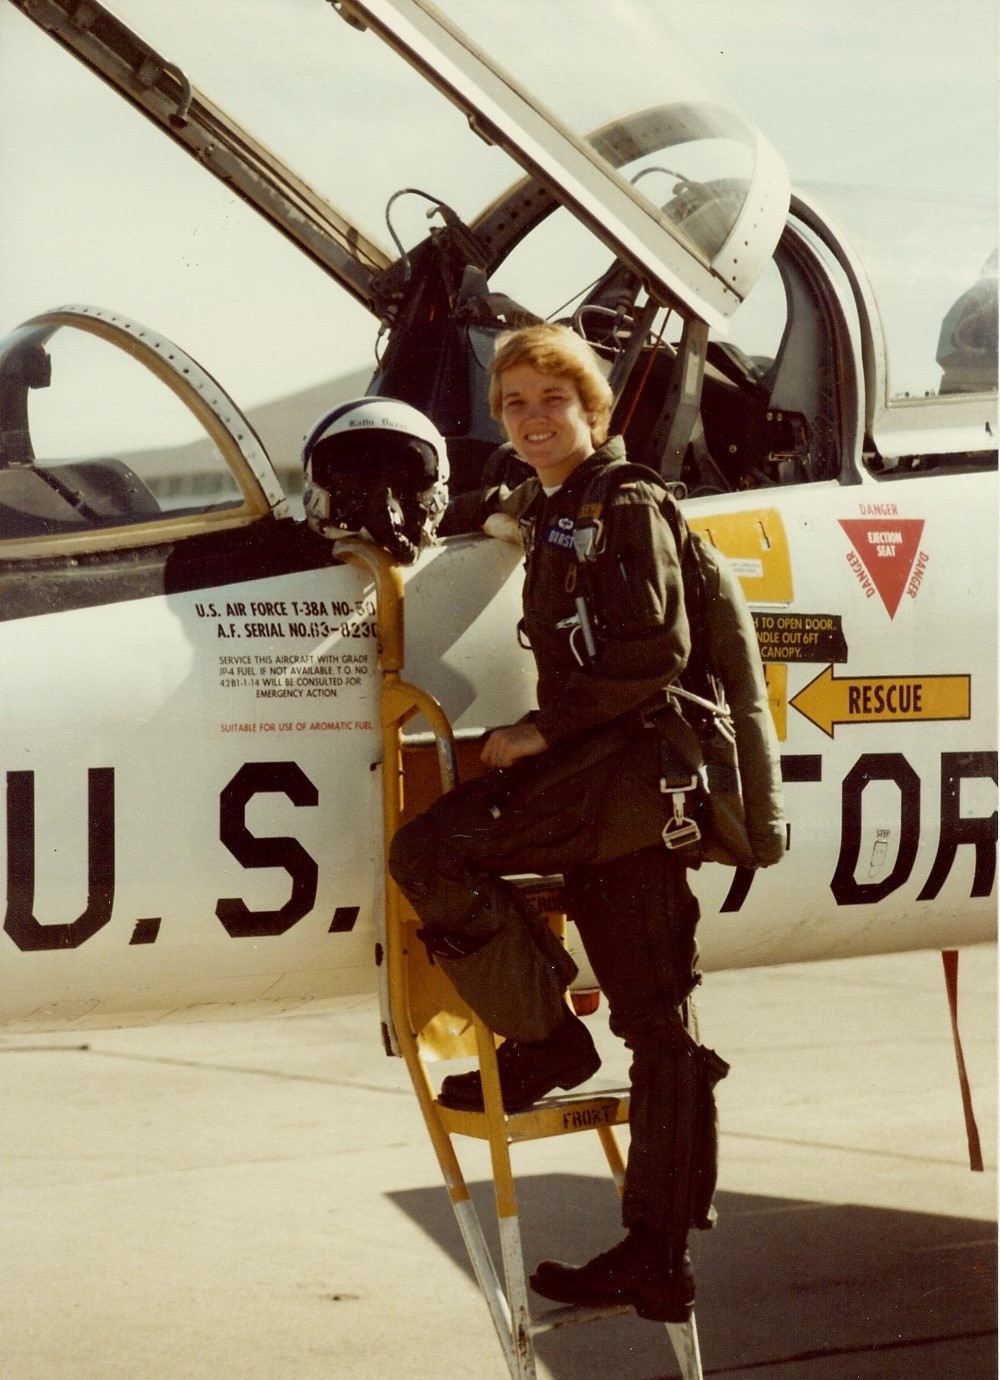 Durst flew the T 38 during her Air Force career. Image: Kathi Durst